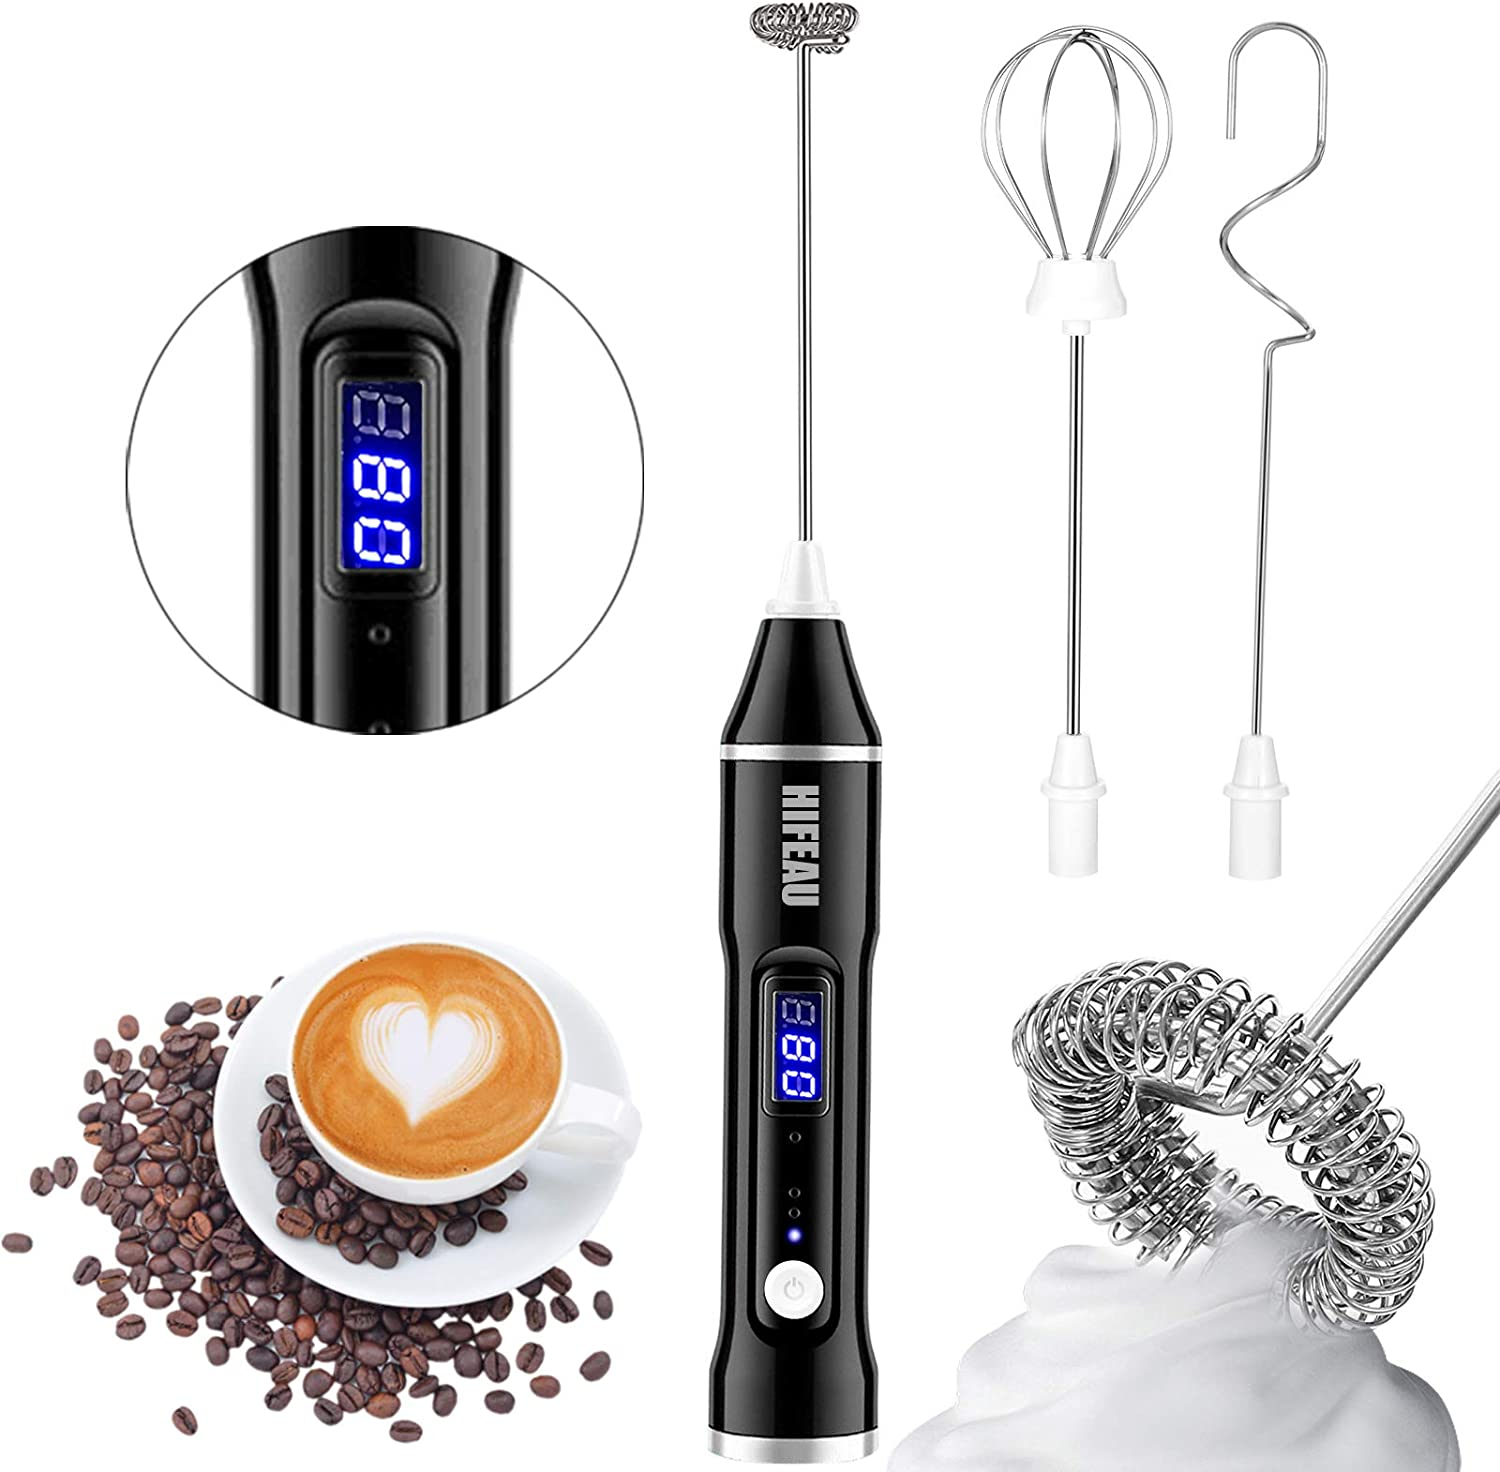 Milk Frother Handheld with 3 heads, USB Rechargeable 3 Speeds Mini Electric Whisk Milk Foam Maker Blender, Power Display Frother for Coffee, Latte, Egg Whisk… (Black)